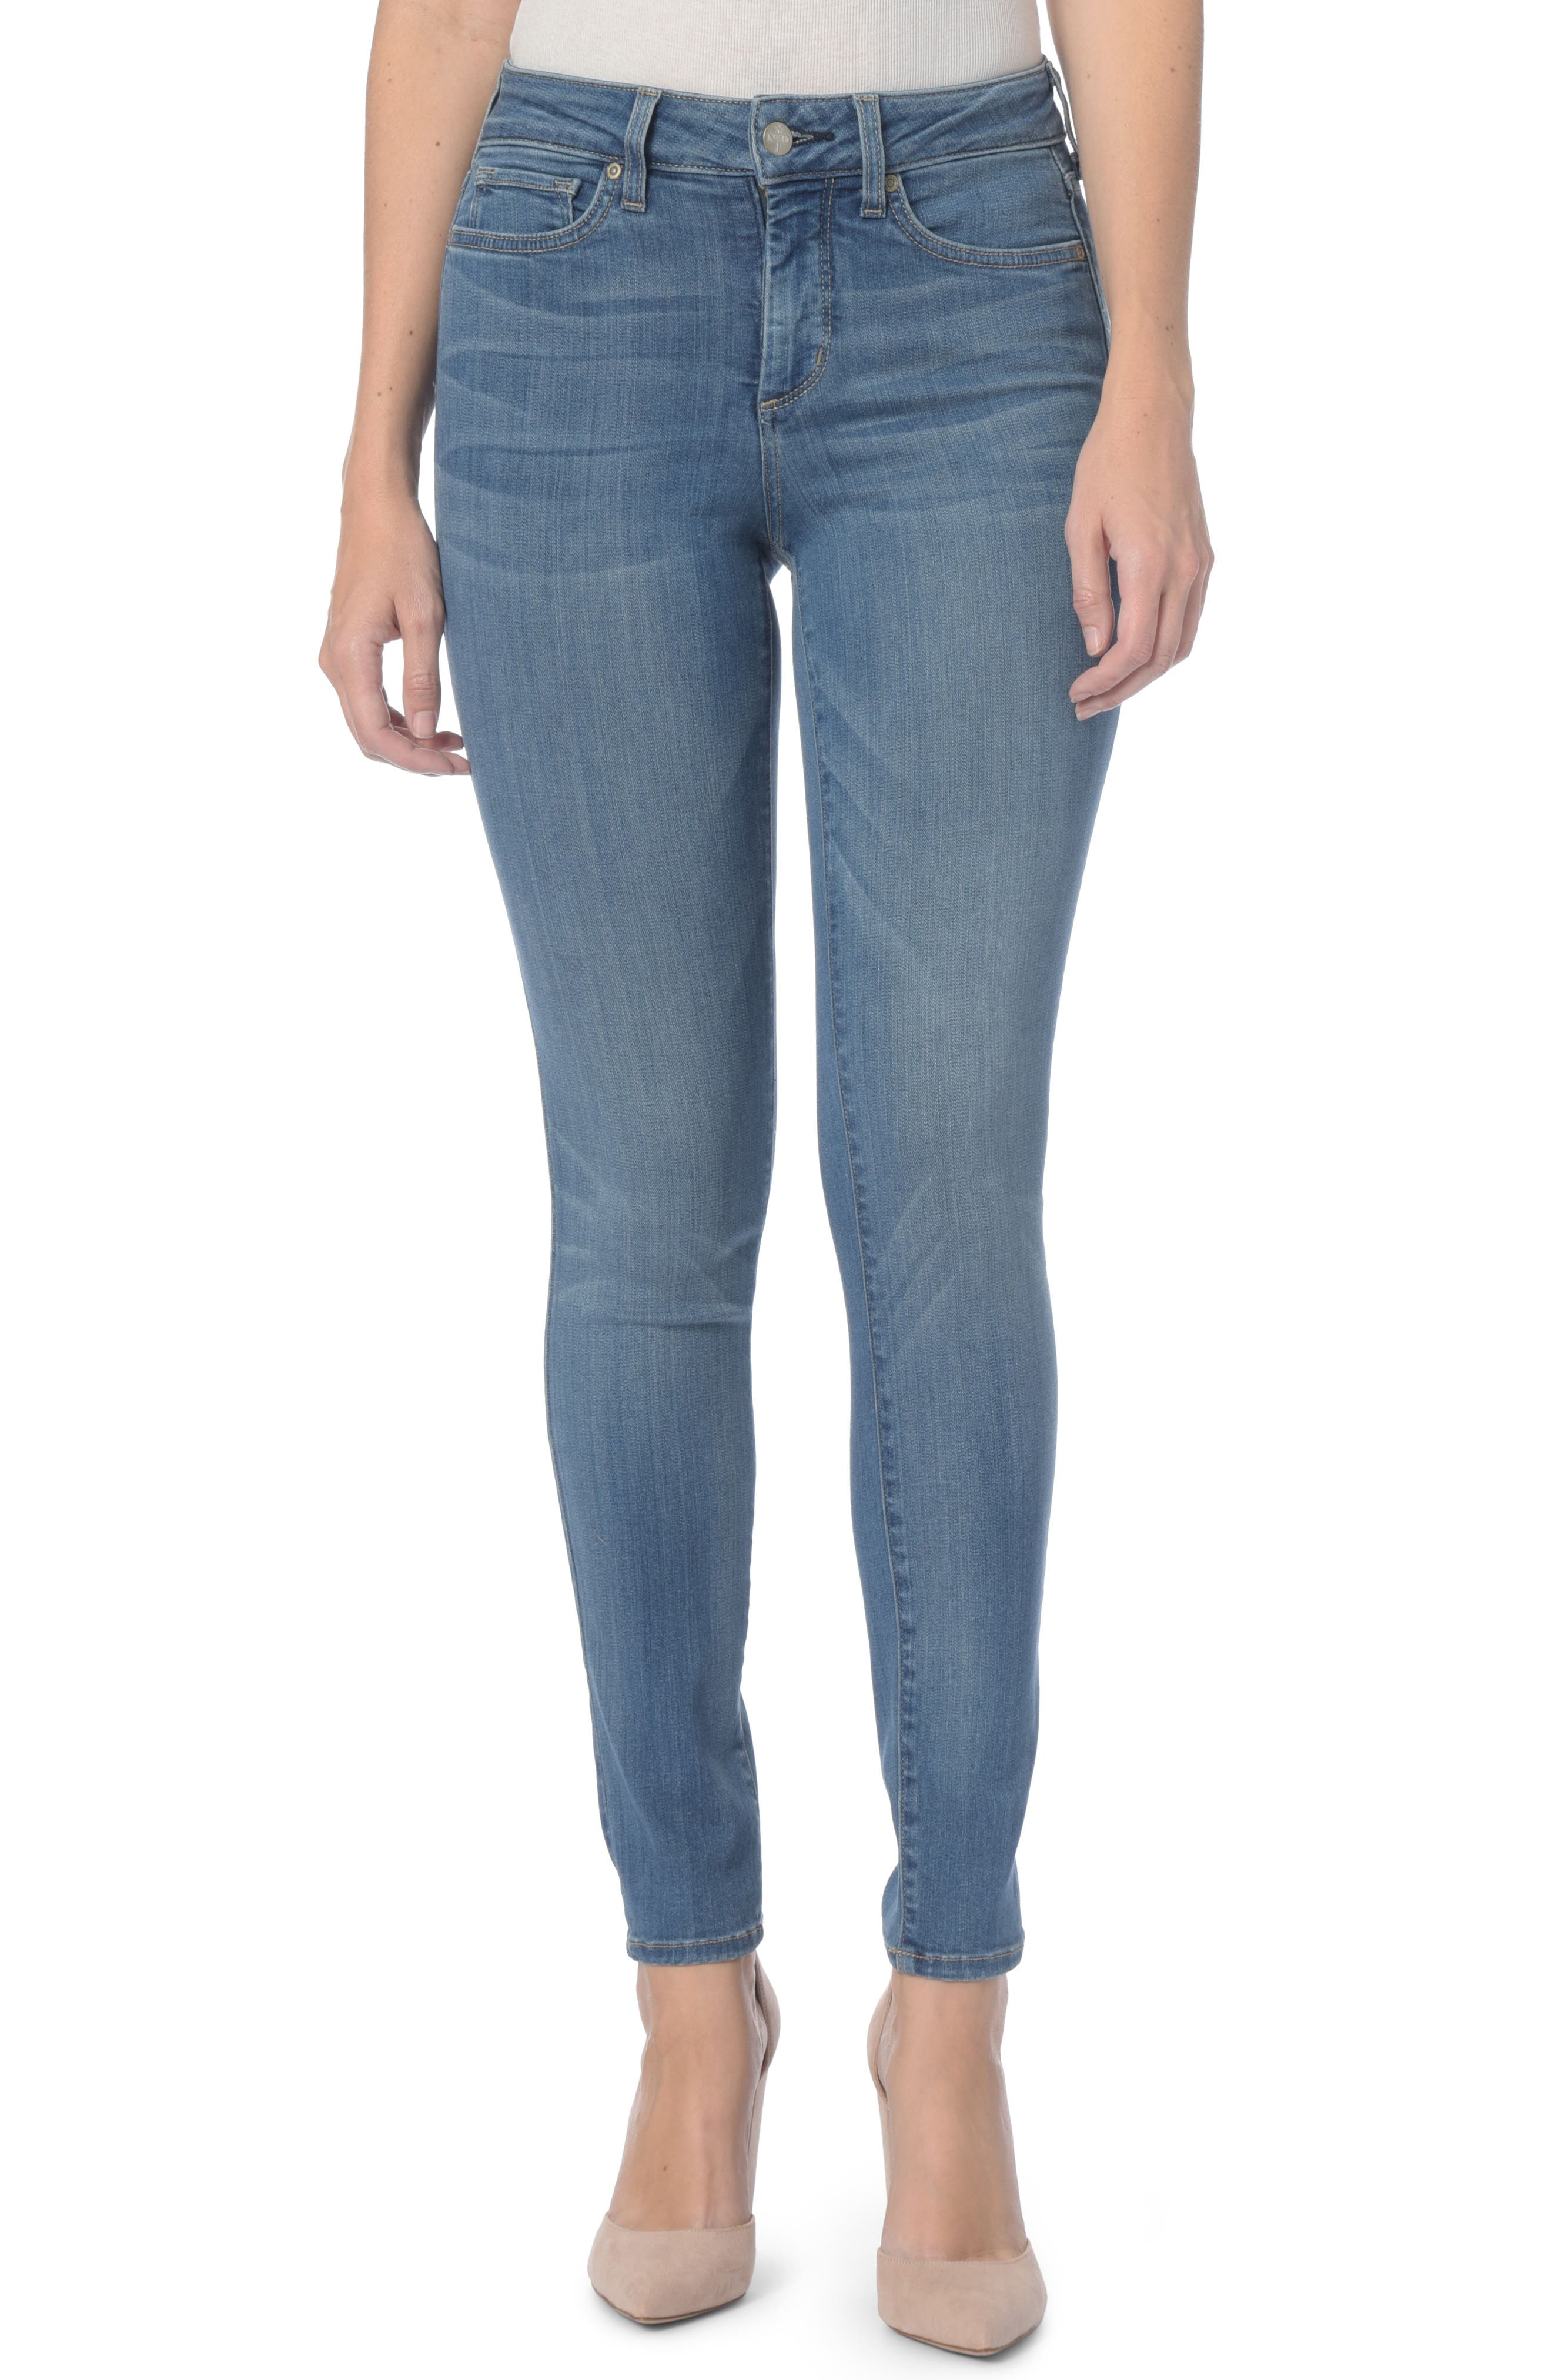 Ami Stretch Super Skinny Jeans,                             Main thumbnail 1, color,                             Colmar